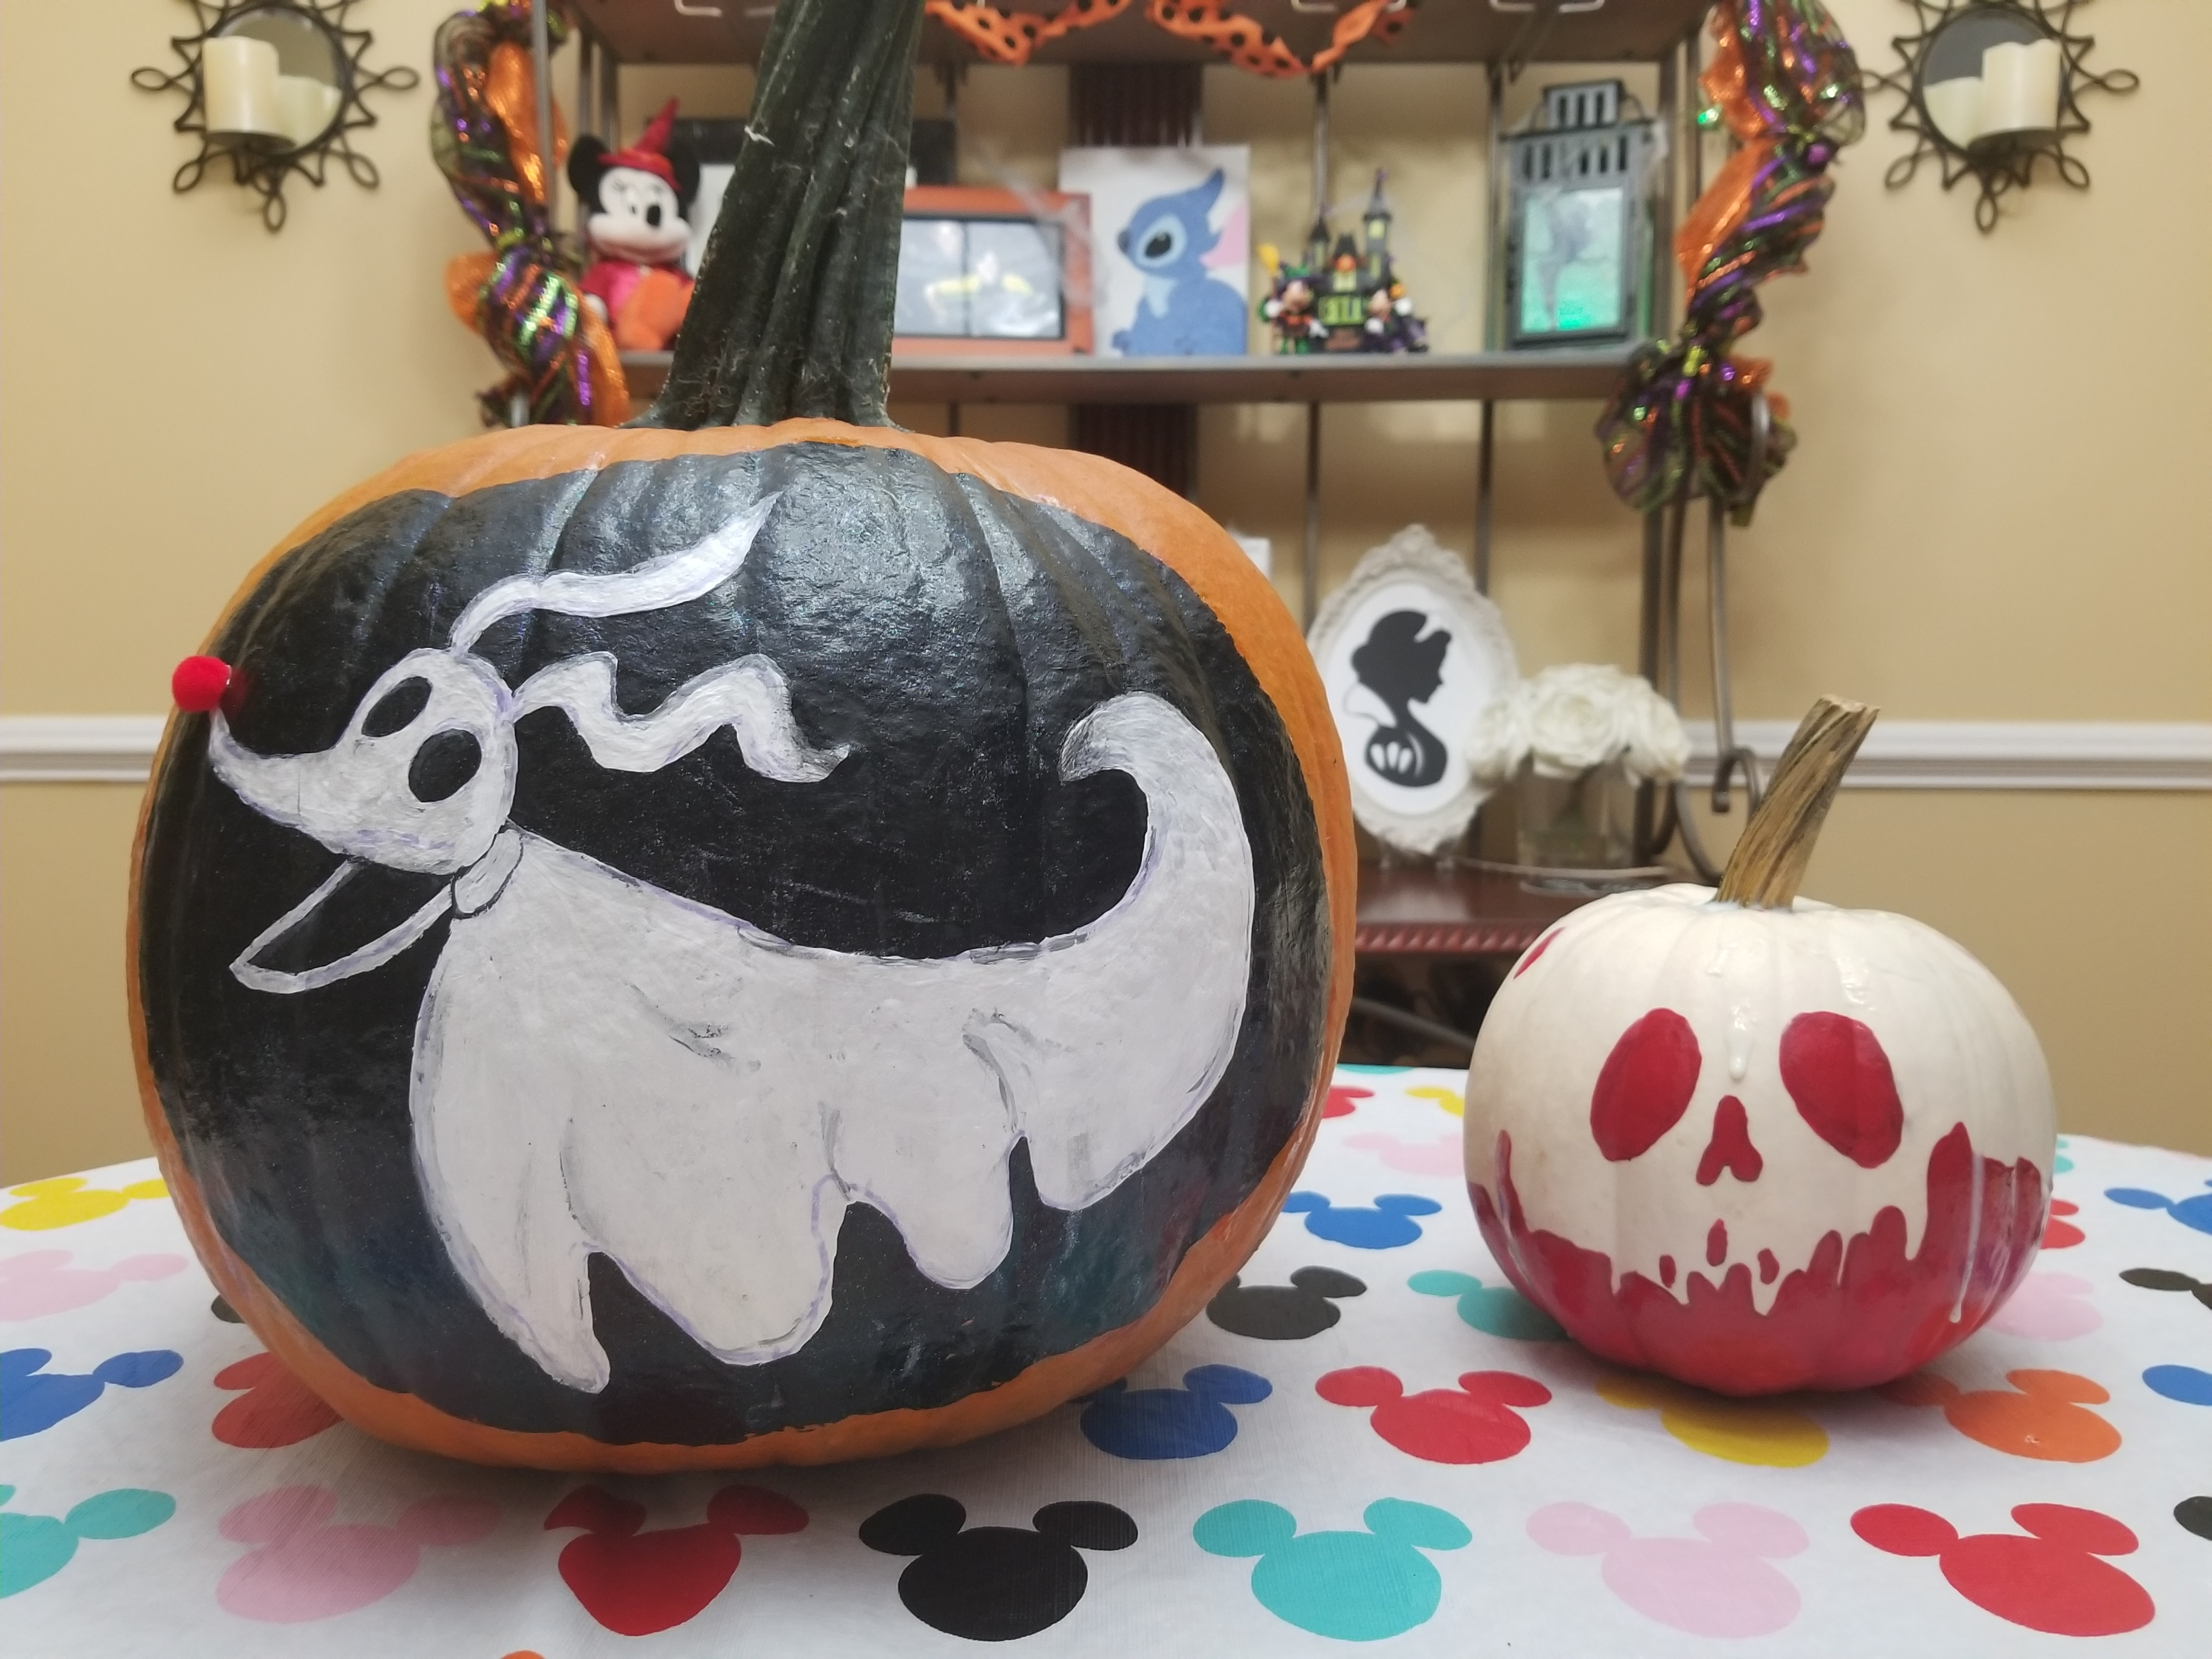 Pumpkin Painting Snow White S Poison Apple Tutorial And Zero From The Nightmare Before Christmas Edutaining Adventures